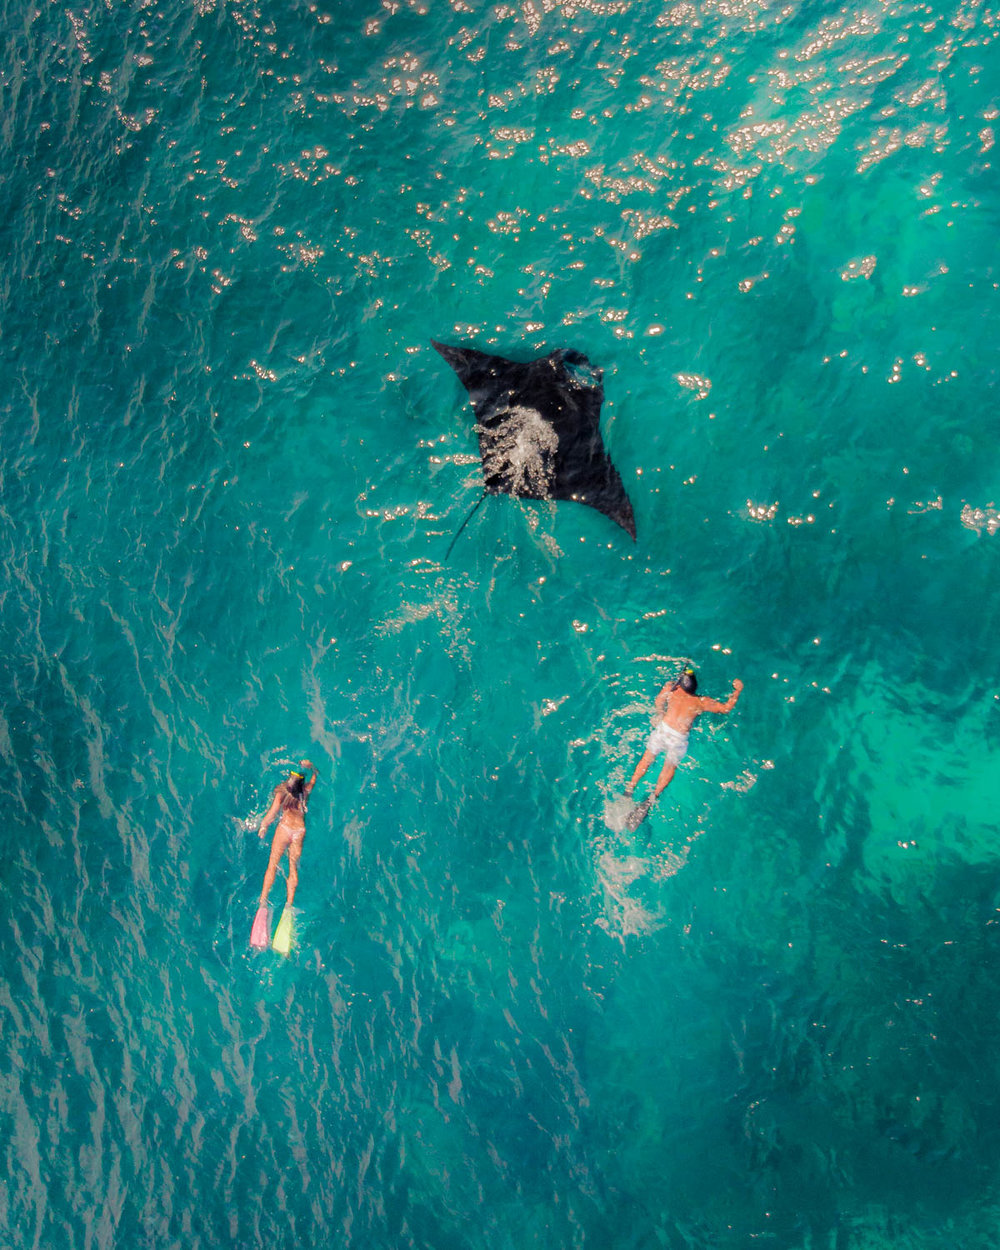 Still one of my favourite shots because we have all seen images of people snorkelling with marine life under water, but I have never seen one other from above!